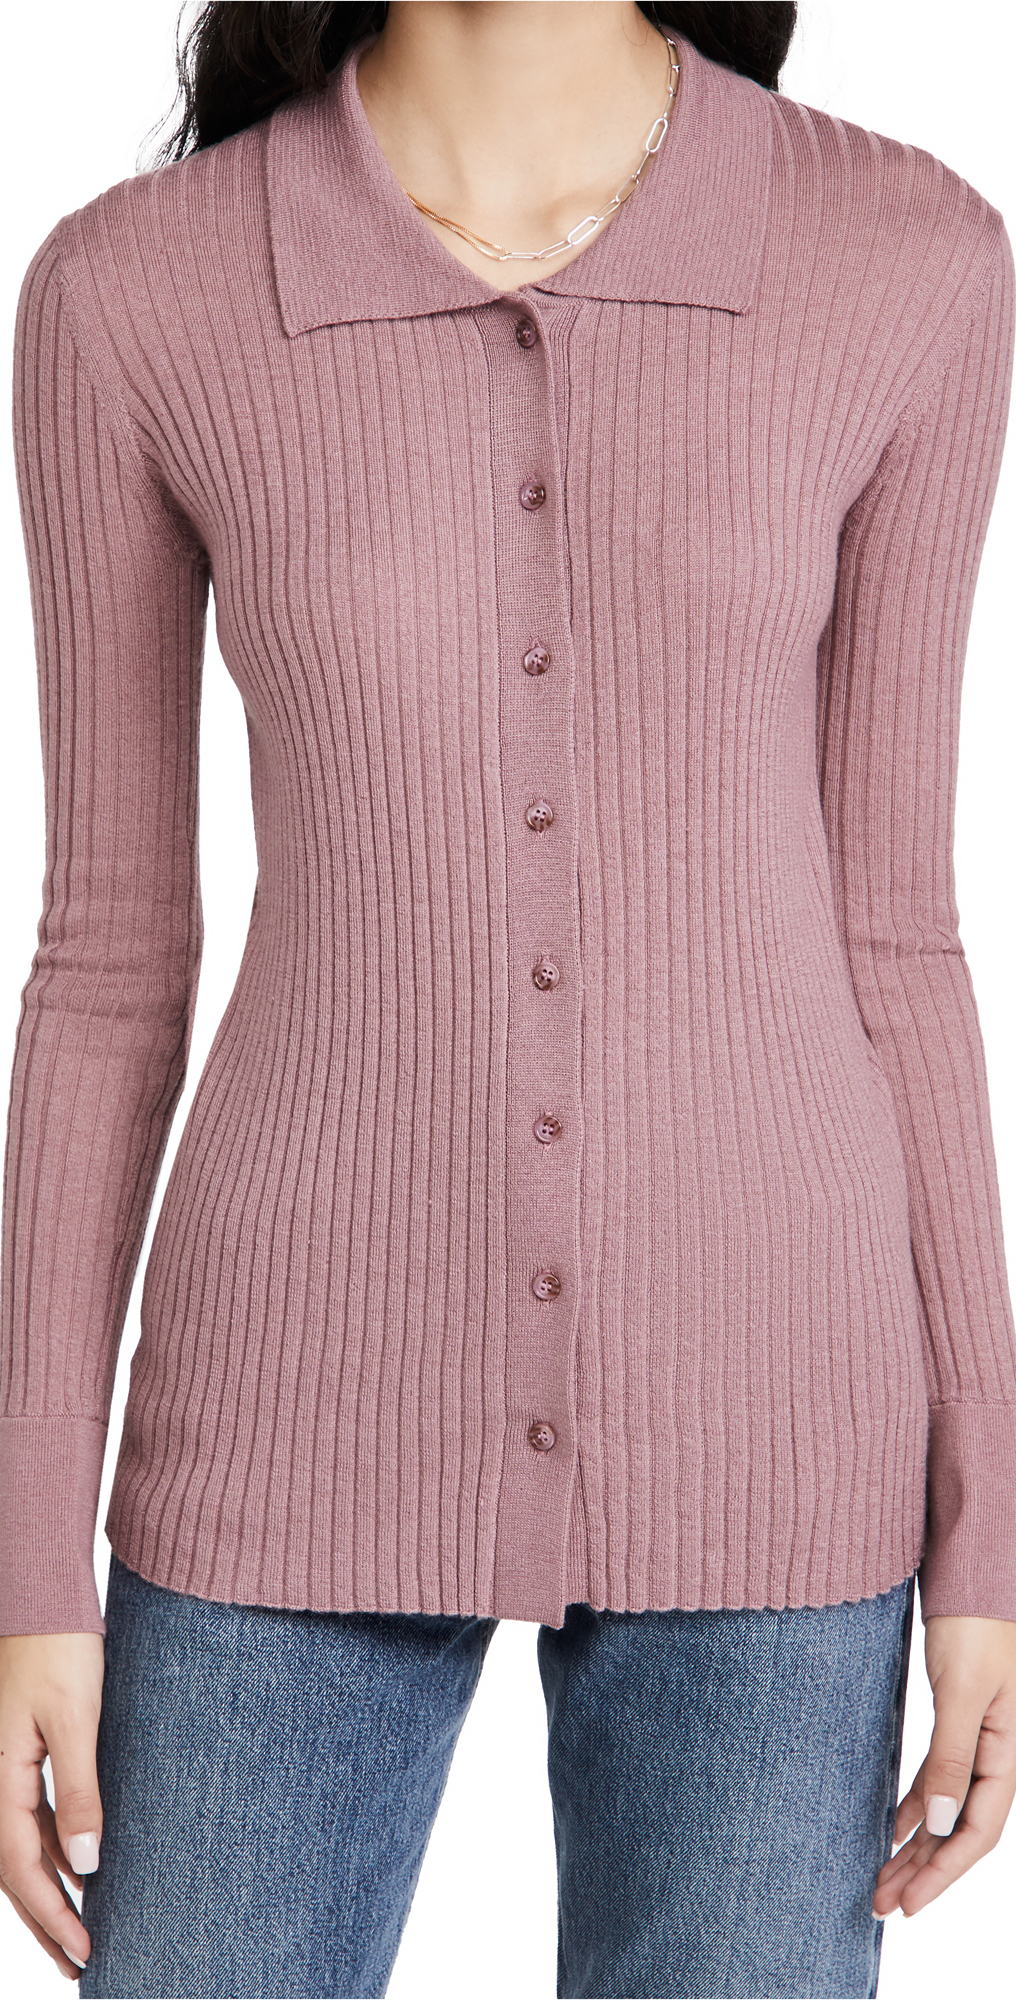 Sablyn Reign Cashmere Top